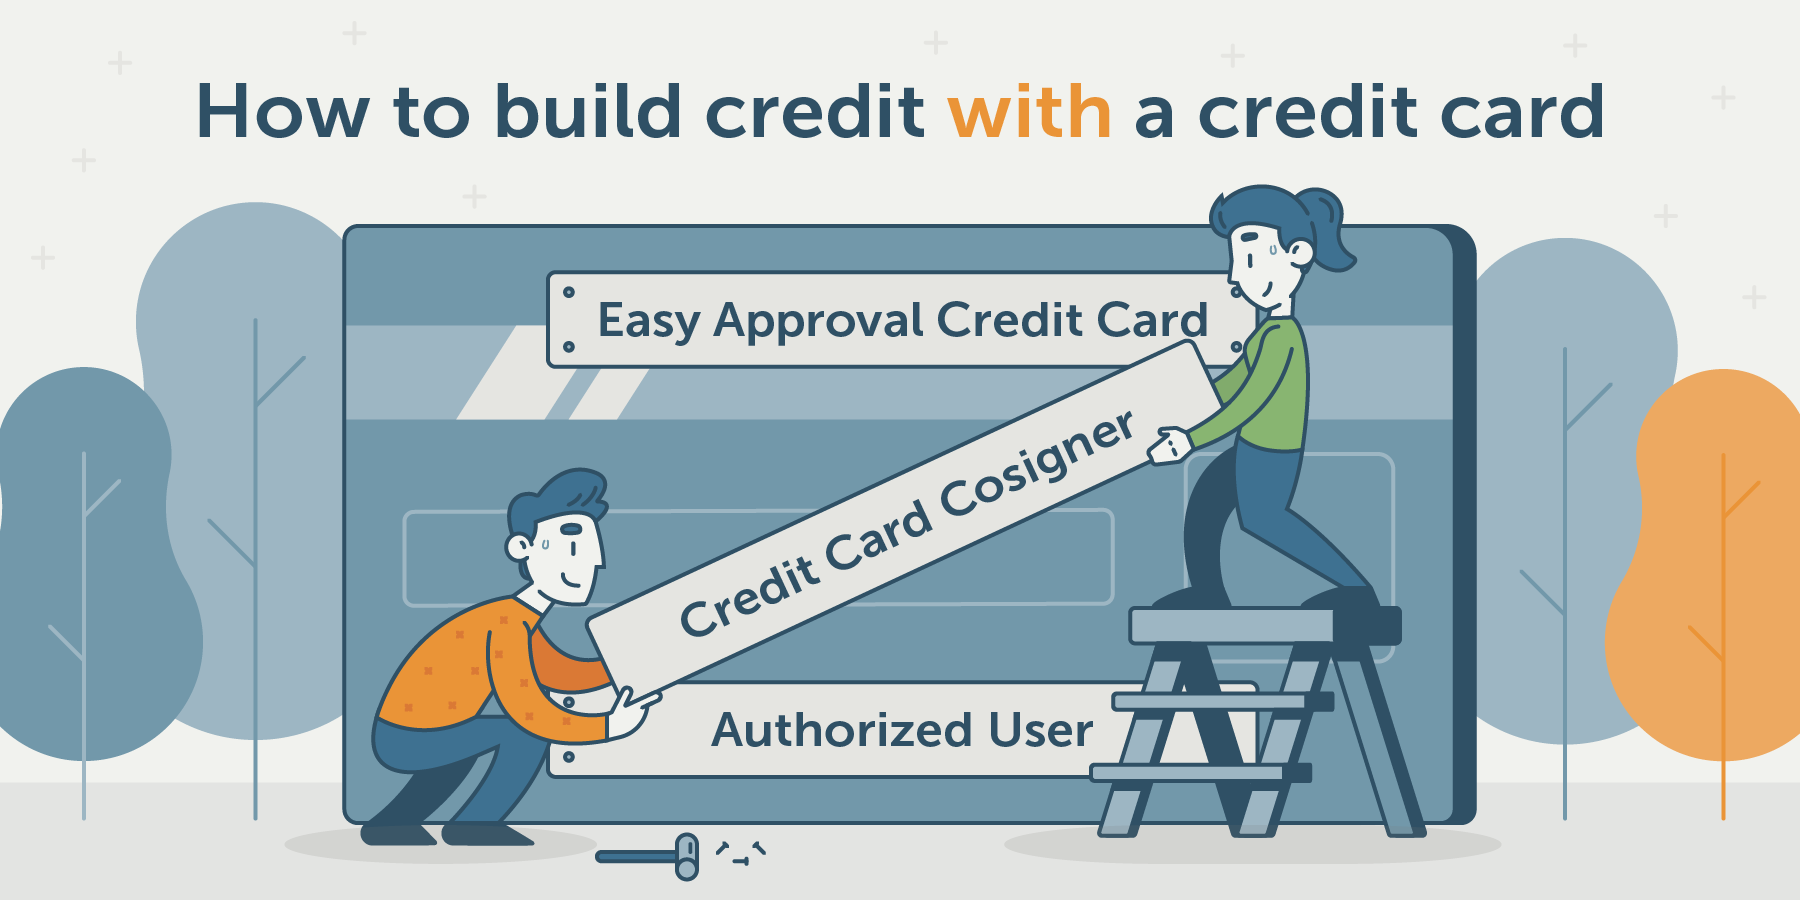 three ways to build credit using a credit card